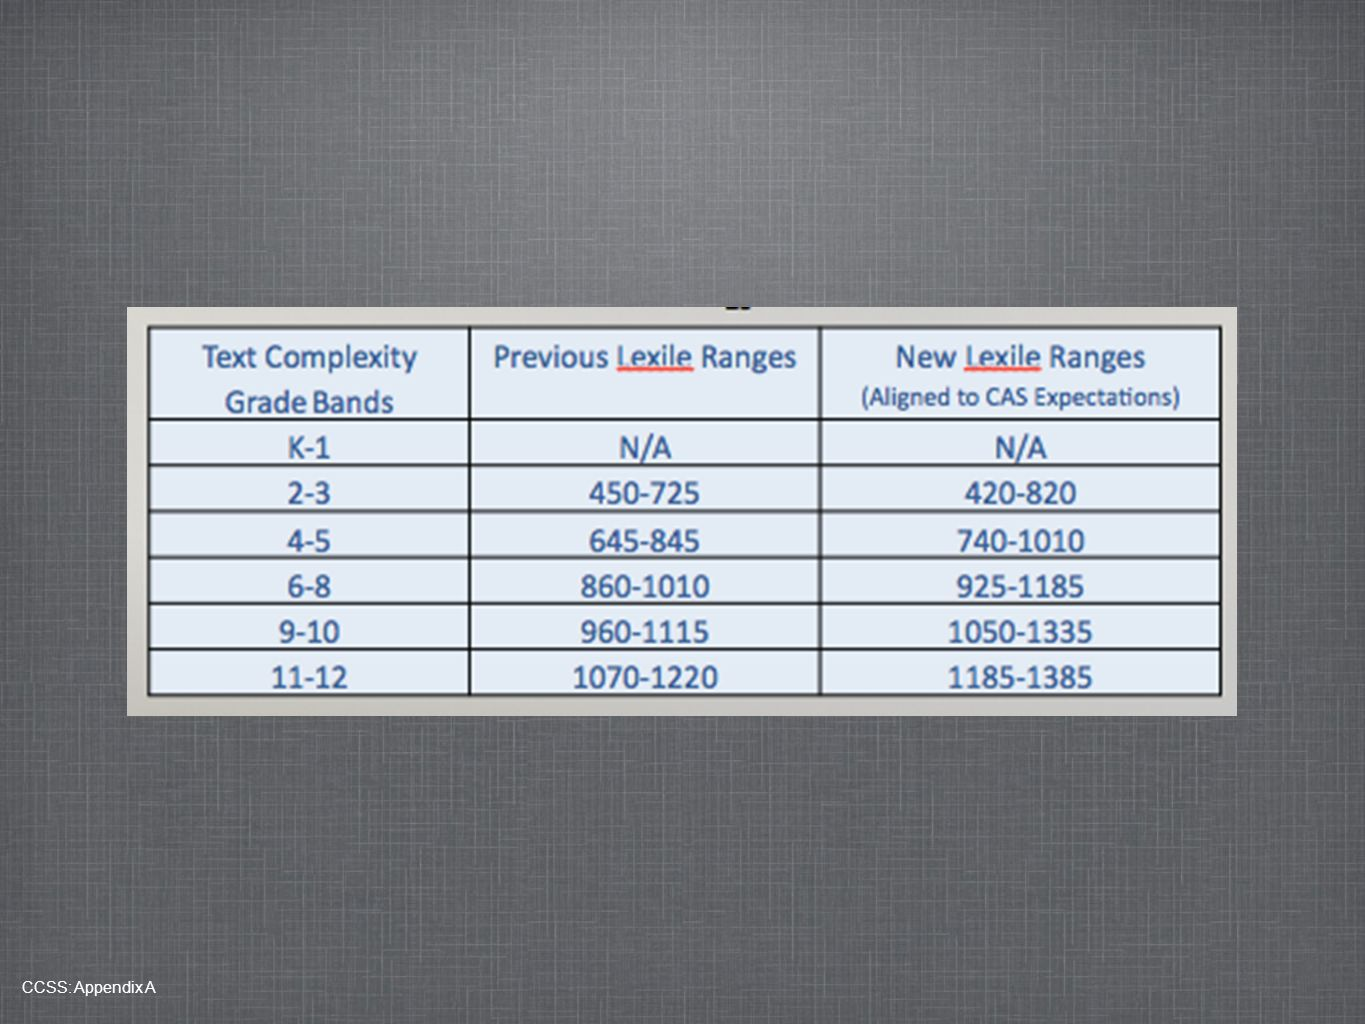 These are the new Lexile bands by grade level as stated by the Common Core compared to the old Lexile Ranges.